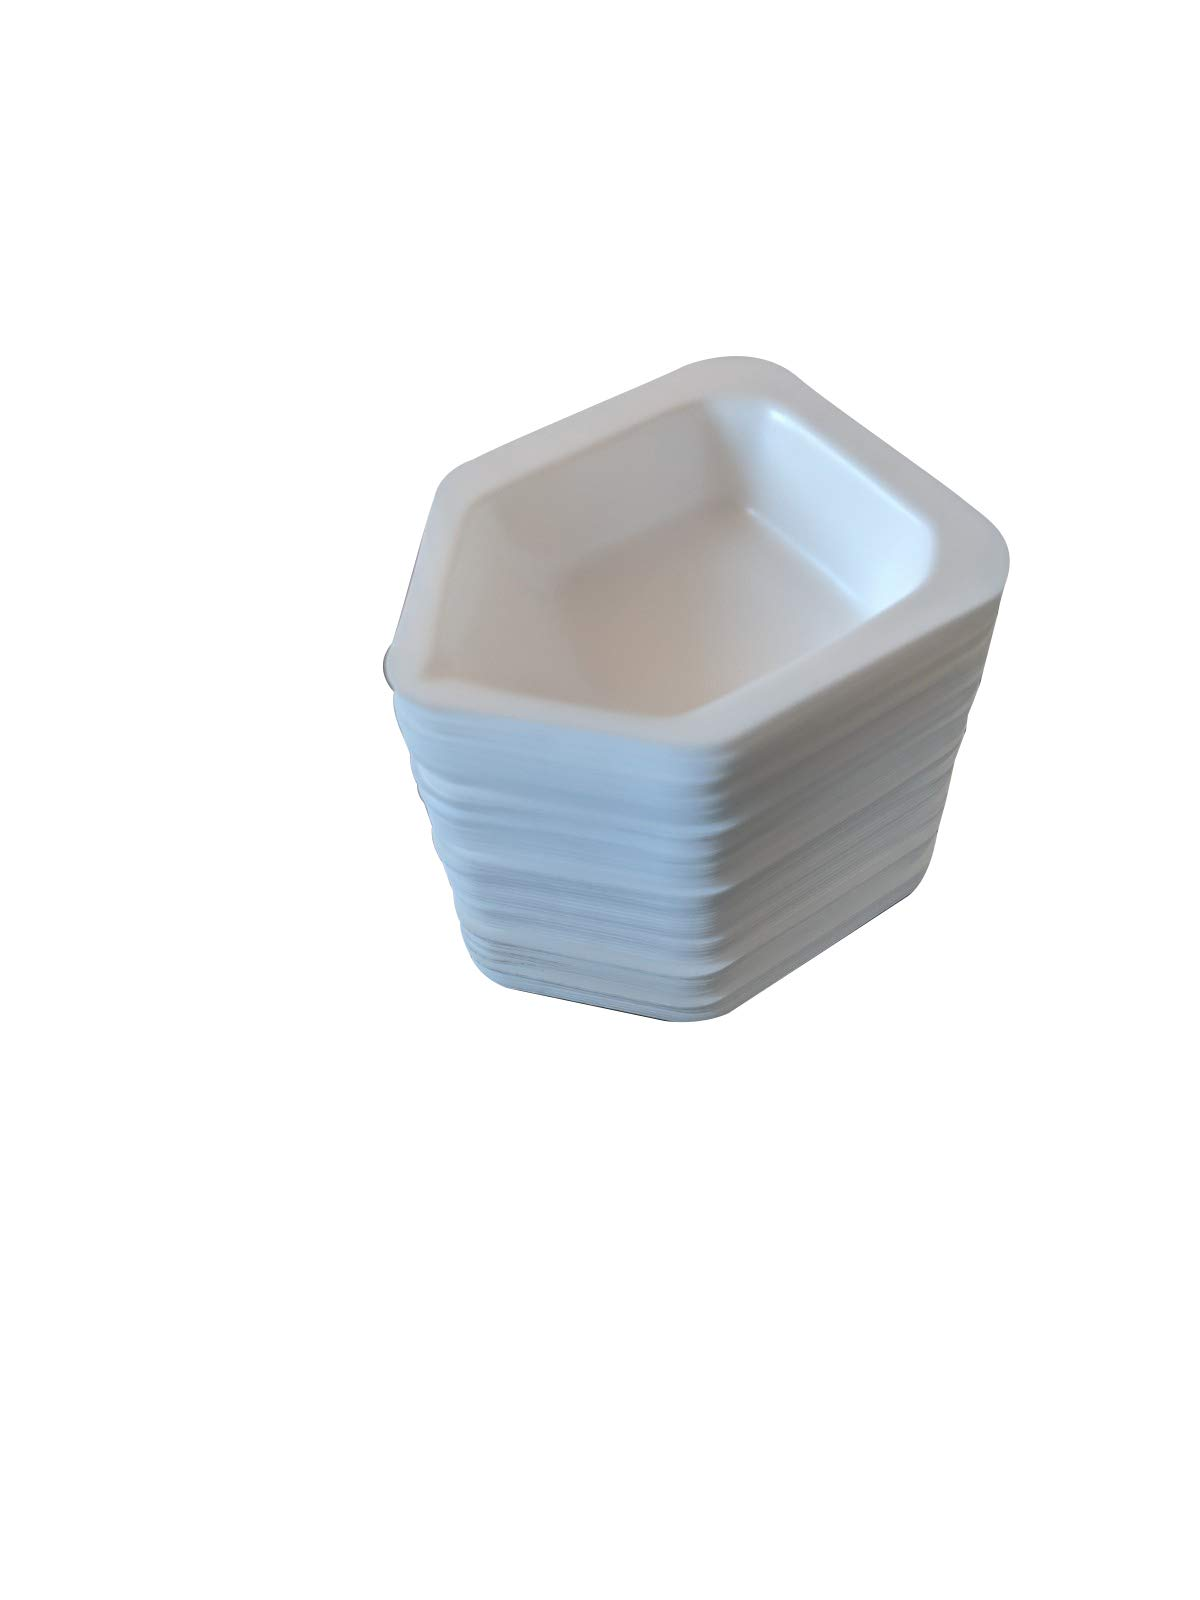 Pointed Polystyrene Weigh Canoe Boats, Medium Dish 2 7/8 in x 4 ¾ in x 1 ¼ in [Pack of 125] by Bartovation